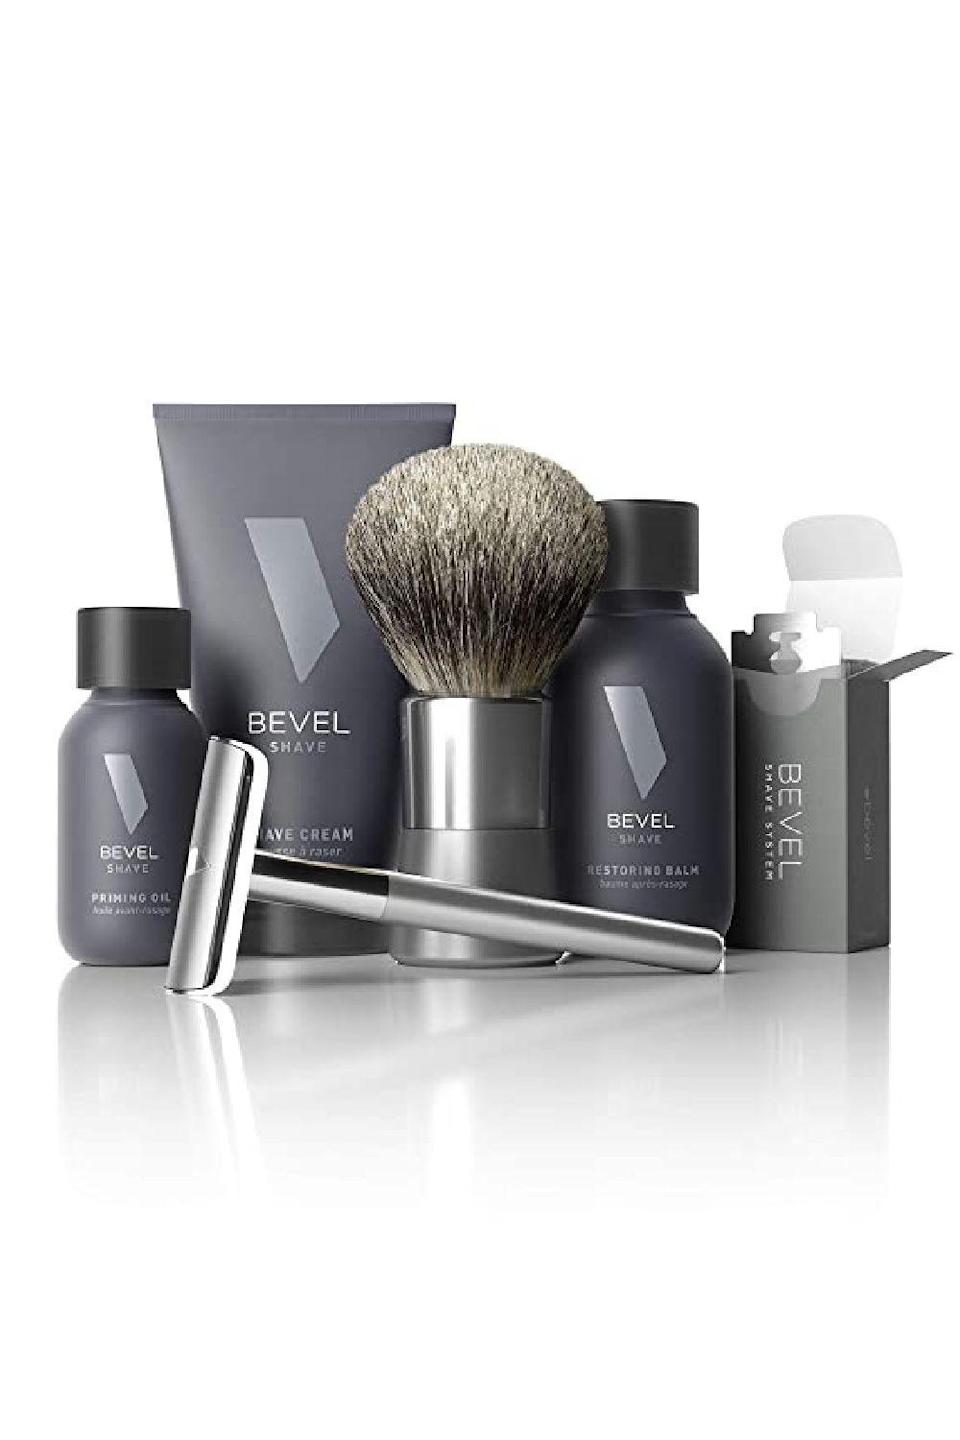 """<p><strong>Bevel</strong></p><p>amazon.com</p><p><strong>$89.99</strong></p><p><a href=""""https://www.amazon.com/dp/B00IT8K564?tag=syn-yahoo-20&ascsubtag=%5Bartid%7C10049.g.5199%5Bsrc%7Cyahoo-us"""" rel=""""nofollow noopener"""" target=""""_blank"""" data-ylk=""""slk:Shop Now"""" class=""""link rapid-noclick-resp"""">Shop Now</a></p><p>Now he can give his beard all the love and attention it needs with a fancy grooming kit that includes a safety razor with 20 blades, oil, balm, and a brush. <br></p>"""